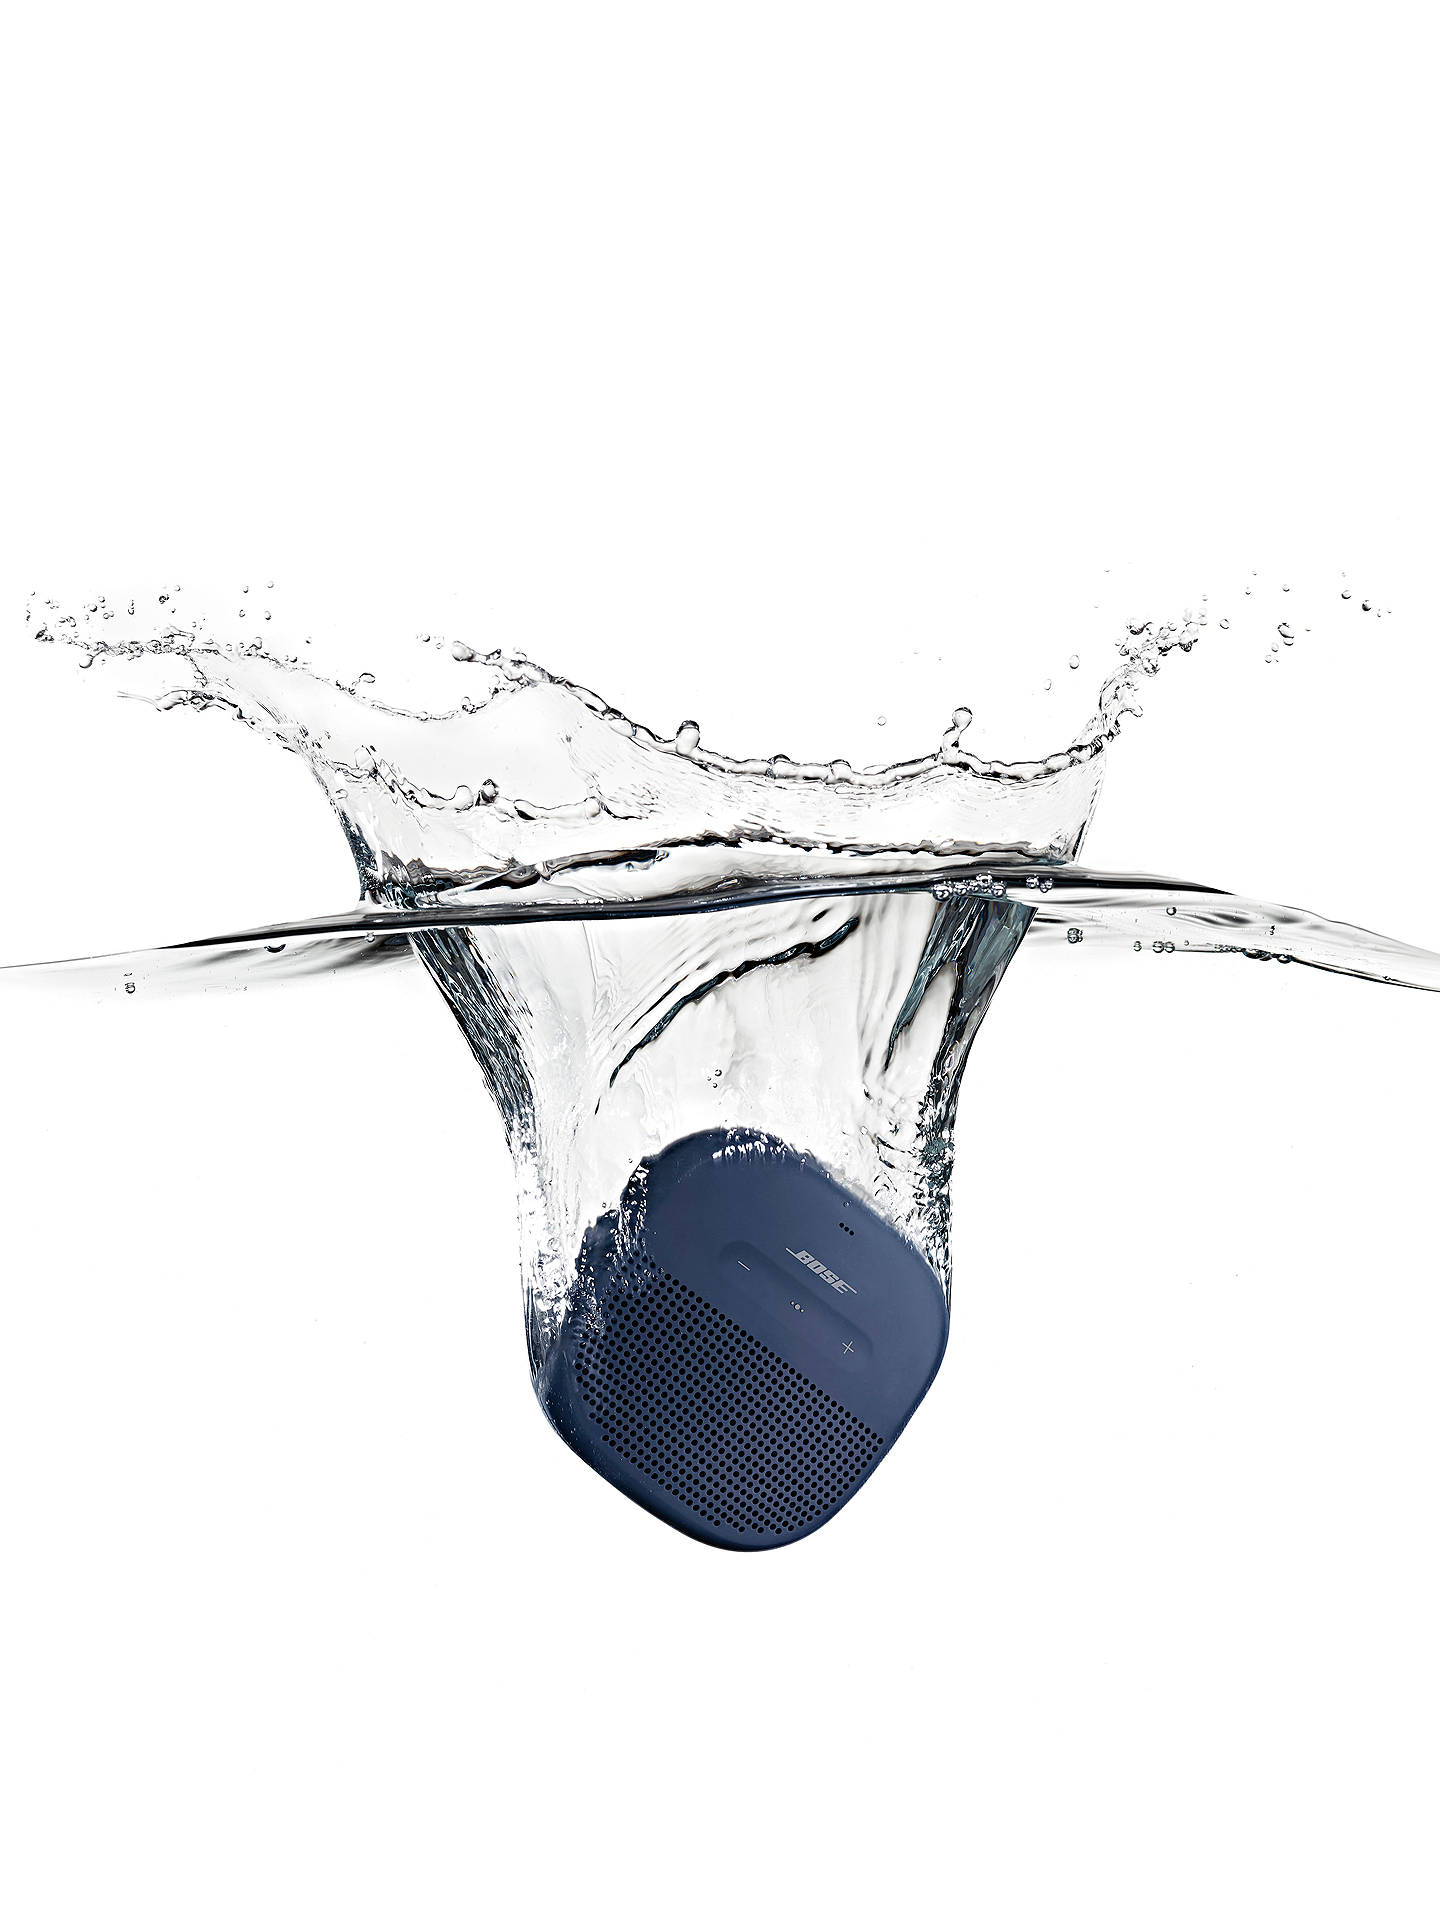 BuyBose® SoundLink® Micro Water-resistant Portable Bluetooth Speaker with Built-in Speakerphone, Midnight Blue Online at johnlewis.com